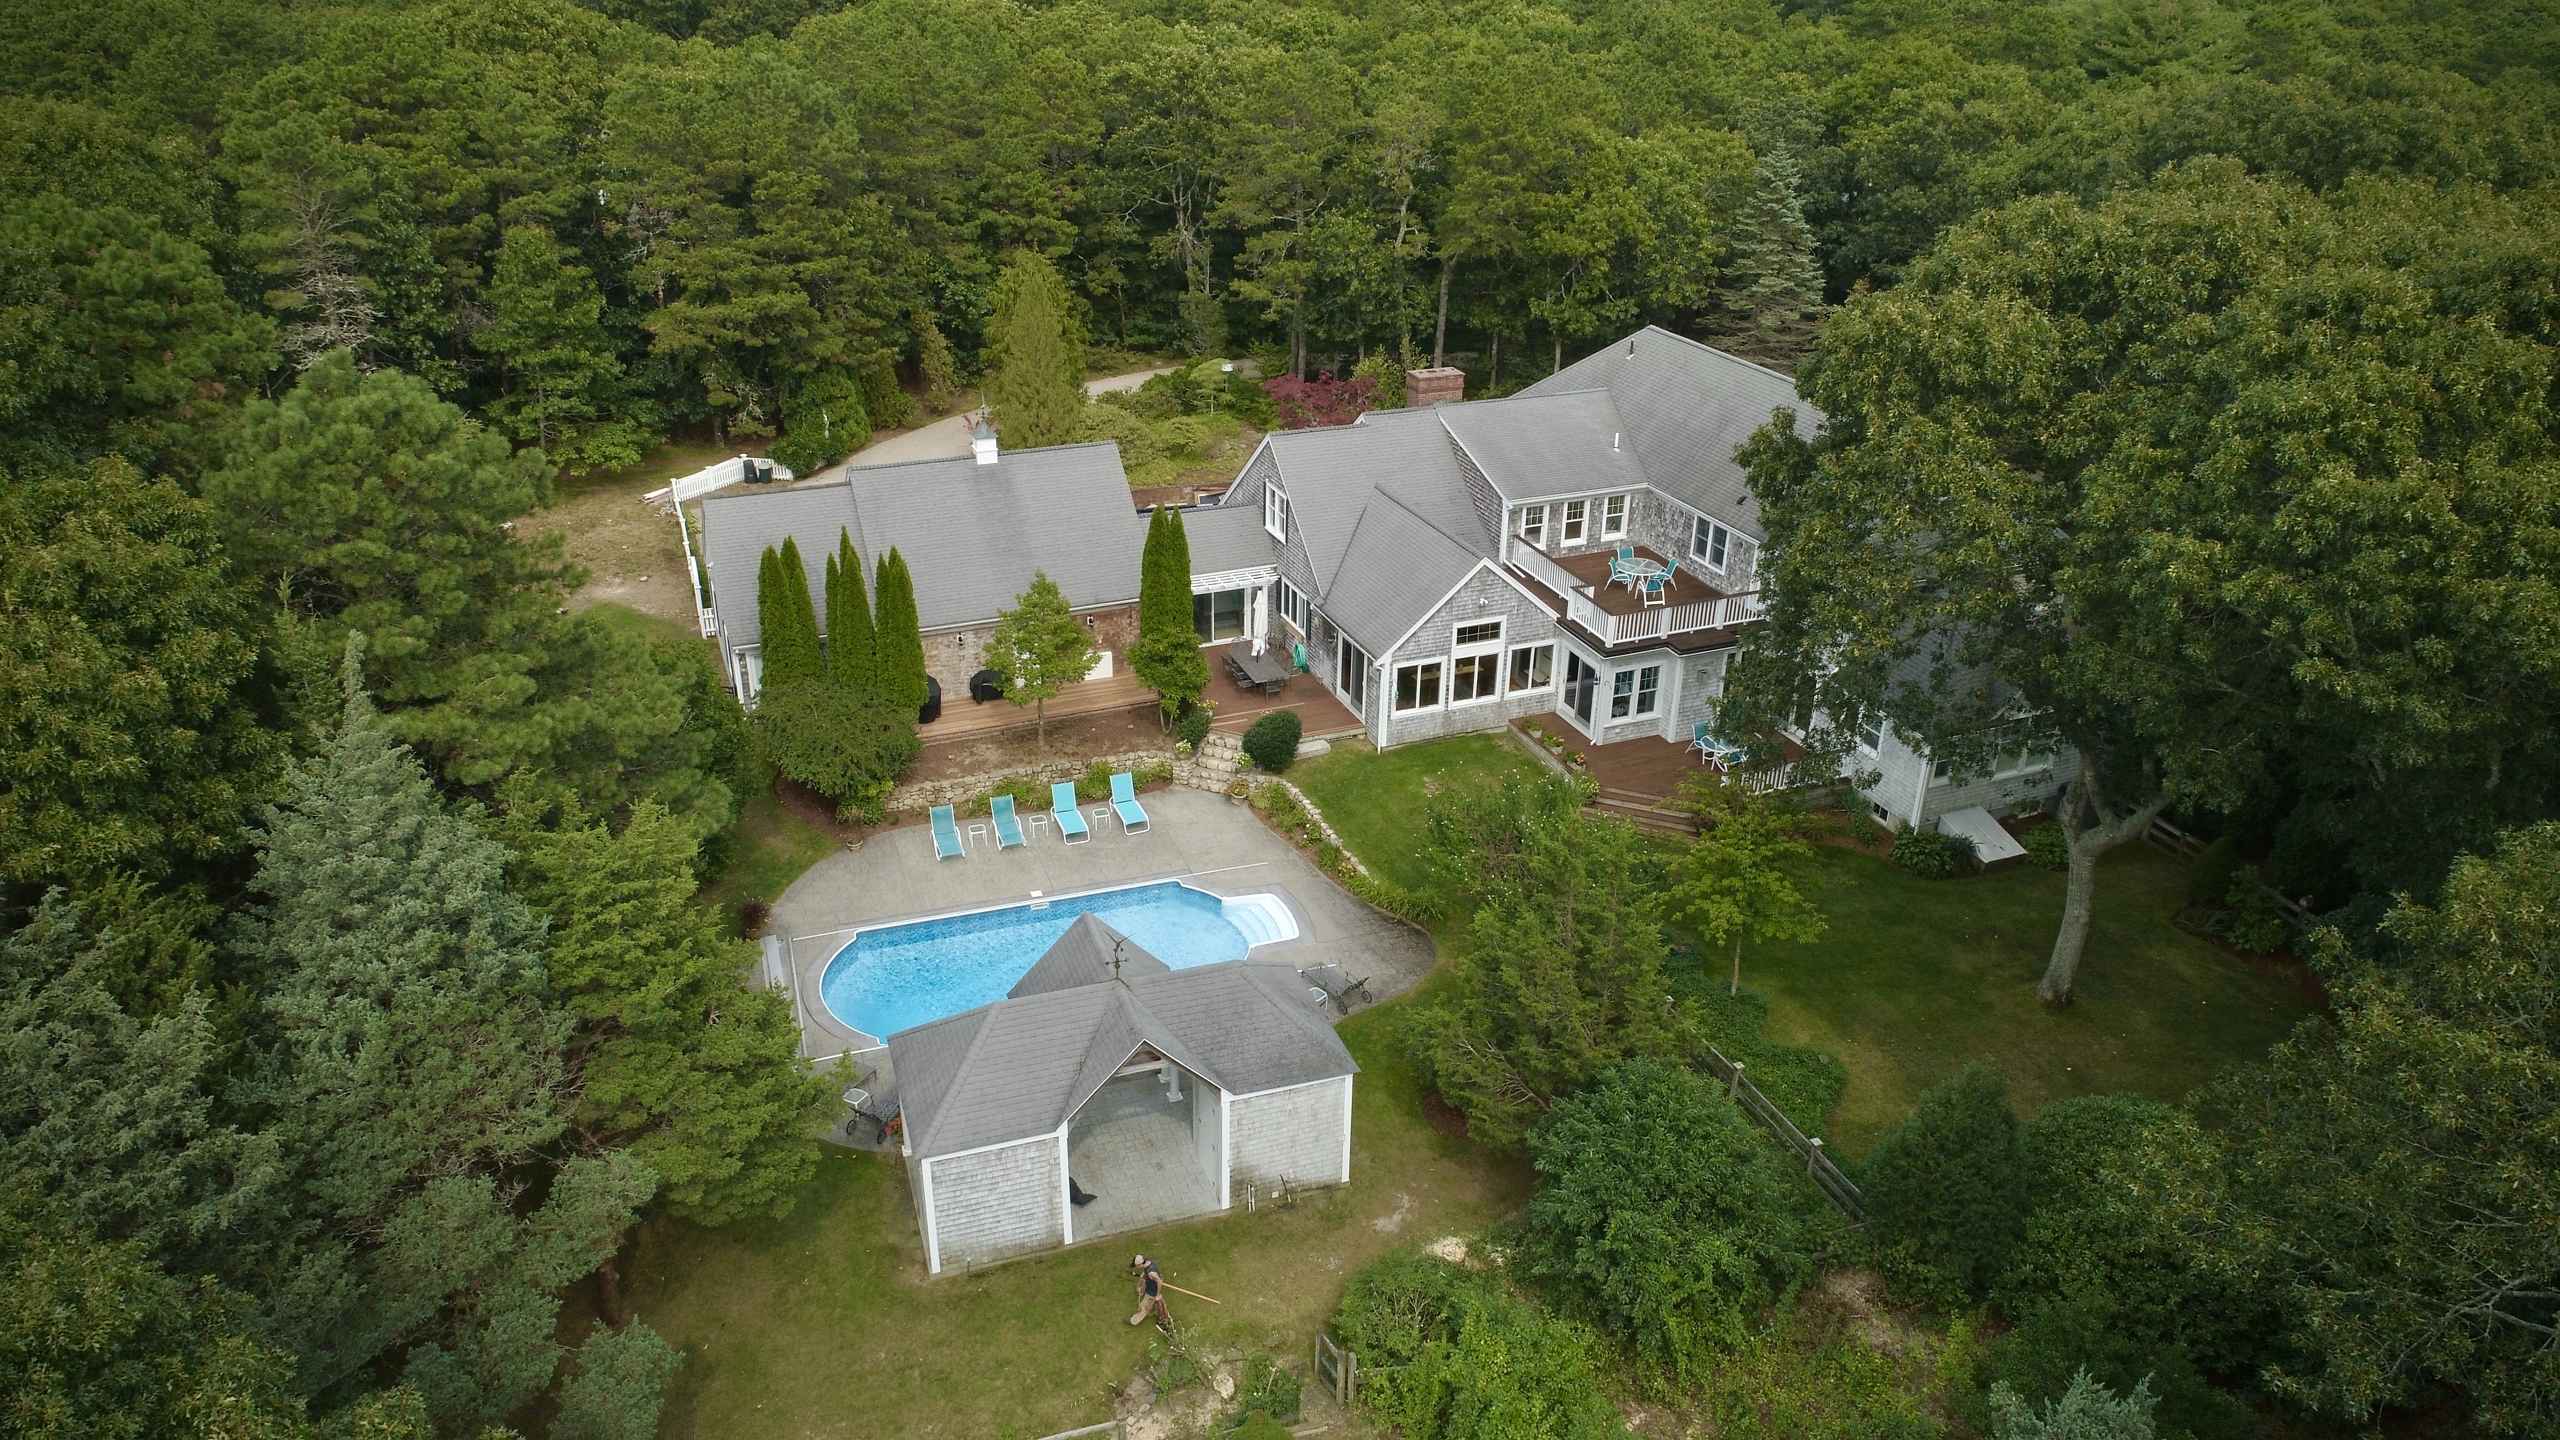 83 Bunker Hill Road Osterville, Ma 02655 | Listed By Griffin Realty Group | MLS 22101858